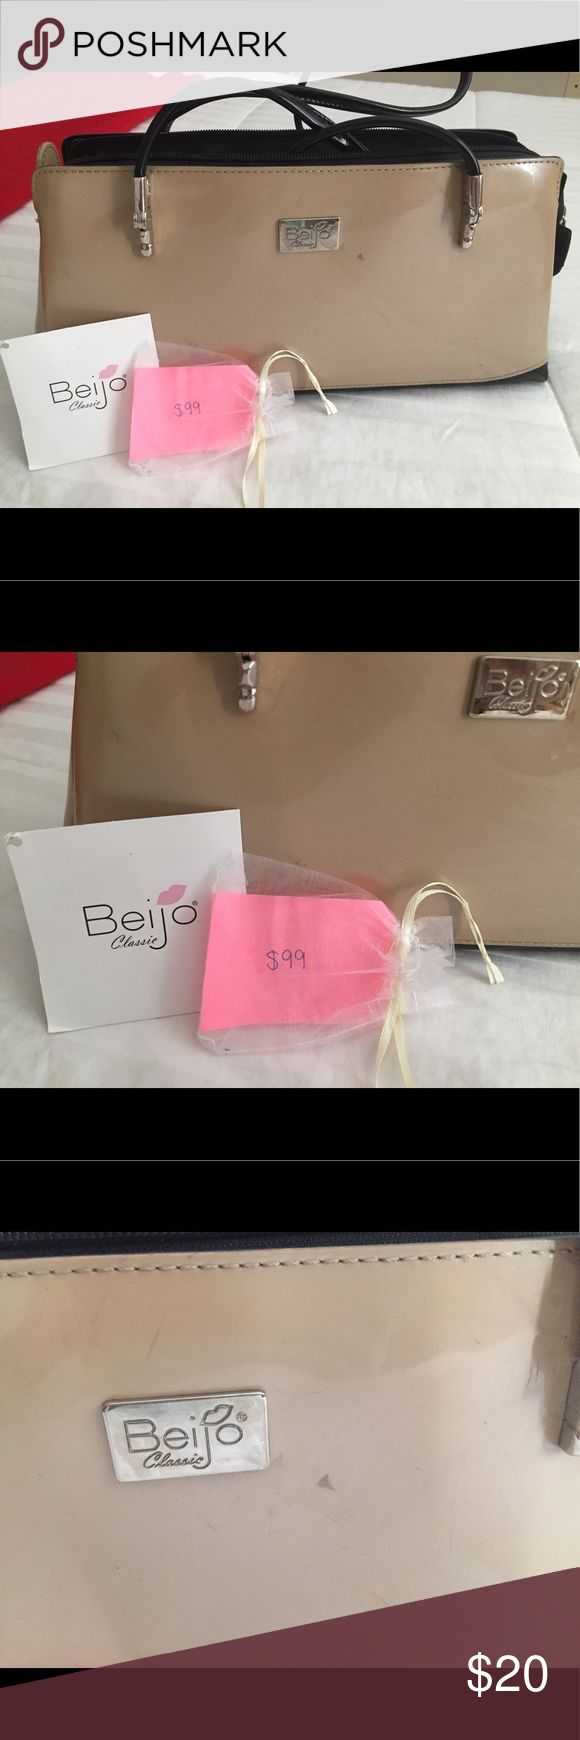 Beautiful Bag!!! Beijo Bag classic! Brown and Tan patent leather bag. Some scuffs, but nothing major! Beijo Bags Satchels